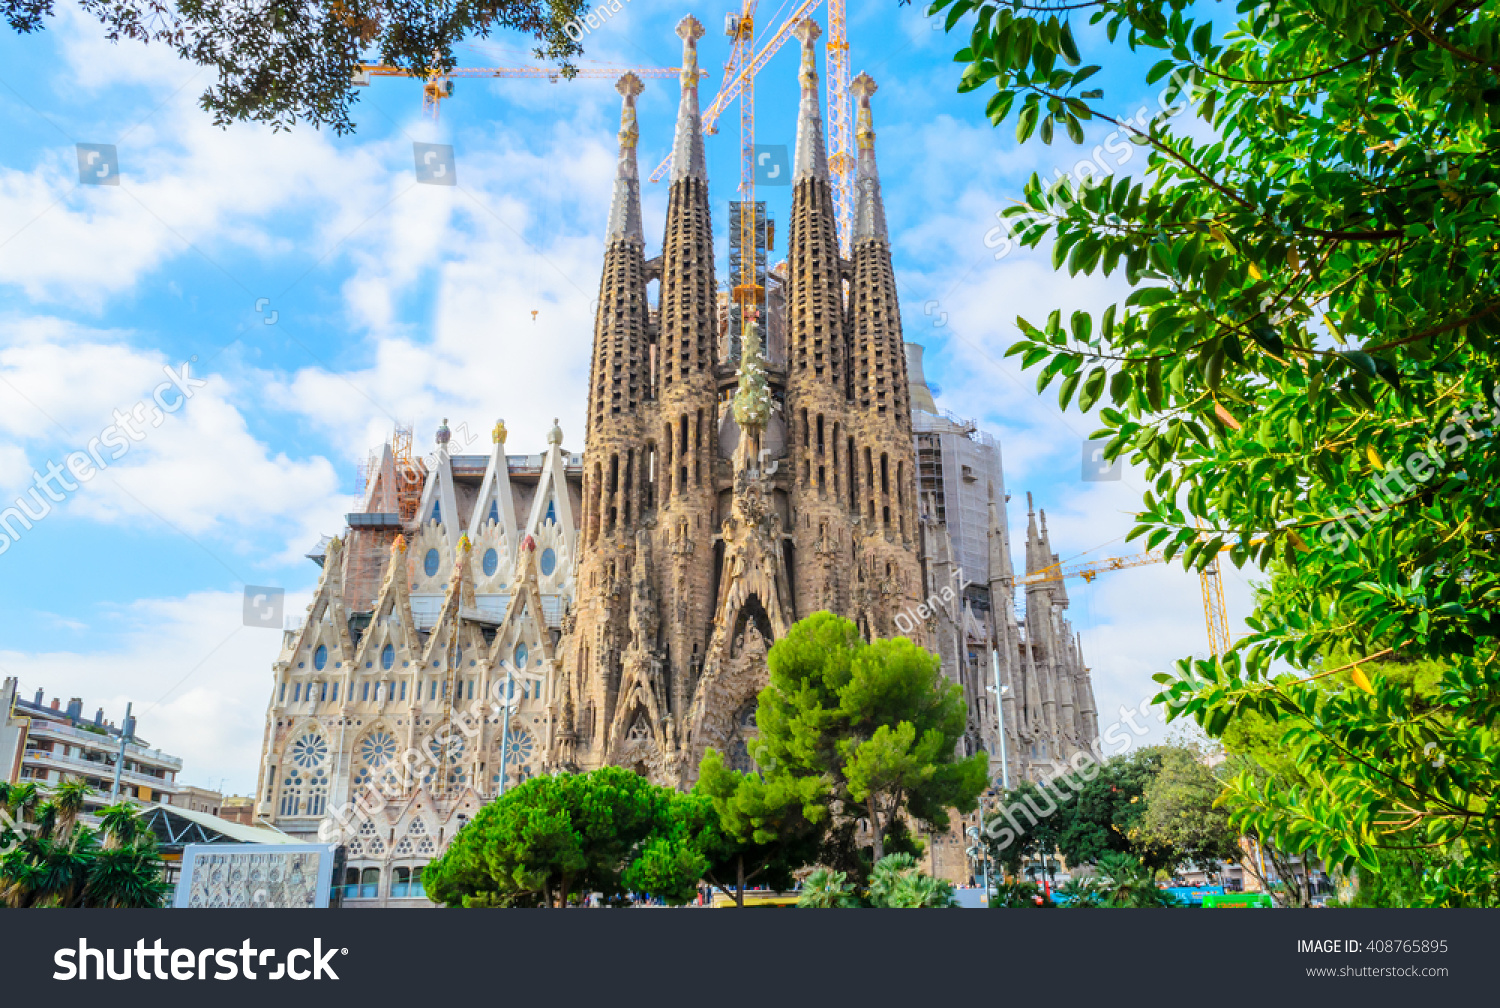 barcelona spain 29092015 la sagrada familia stock photo. Black Bedroom Furniture Sets. Home Design Ideas